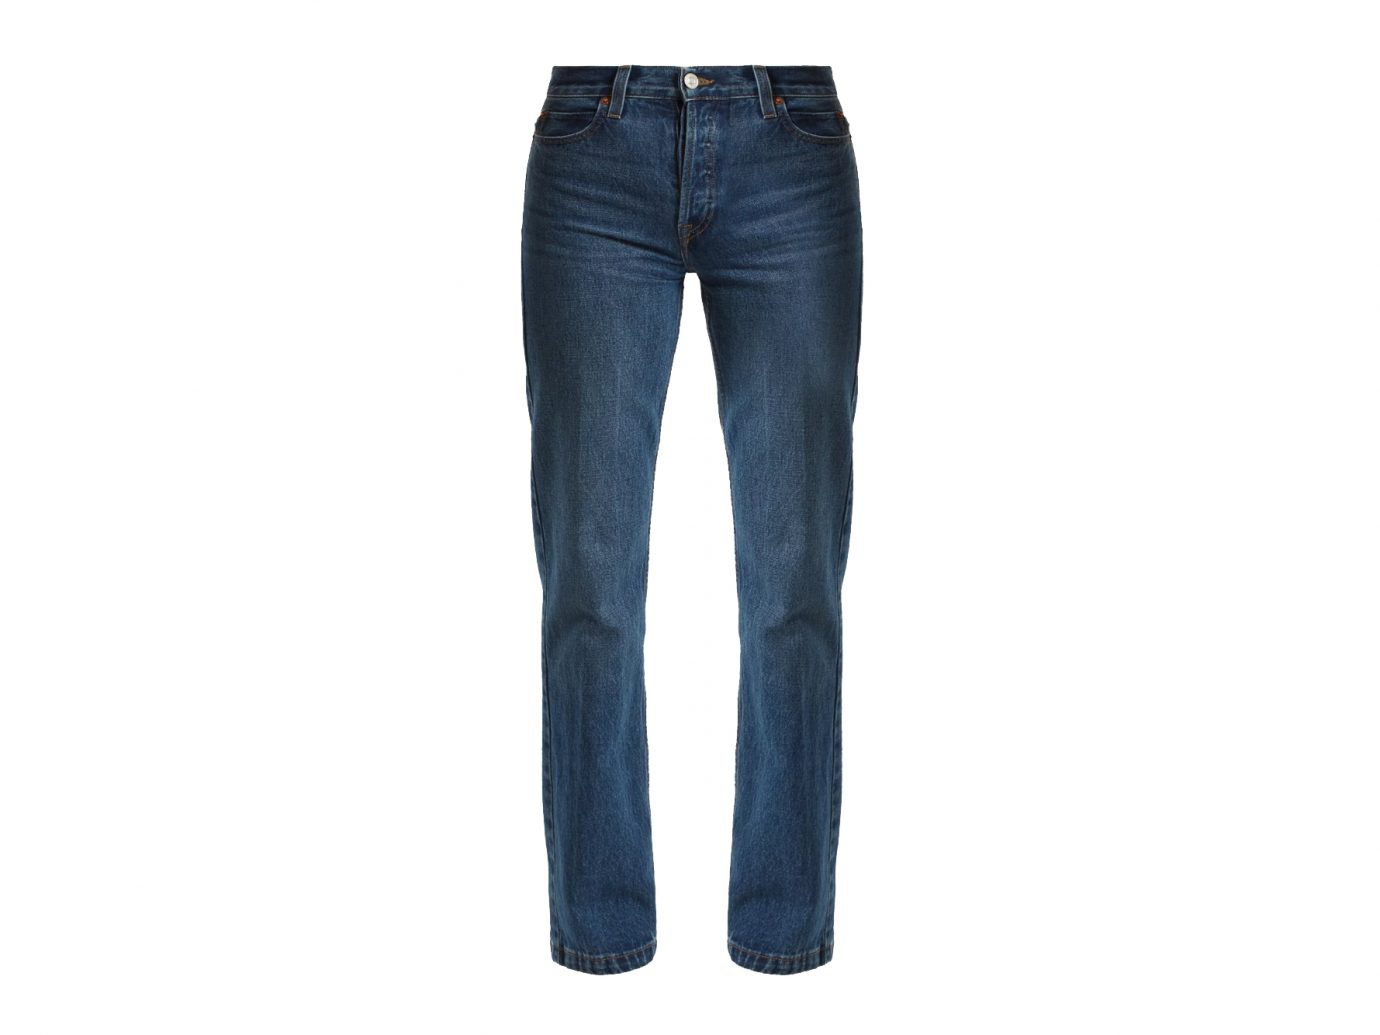 RE/DONE ORIGINALS High-rise straight-leg jeans